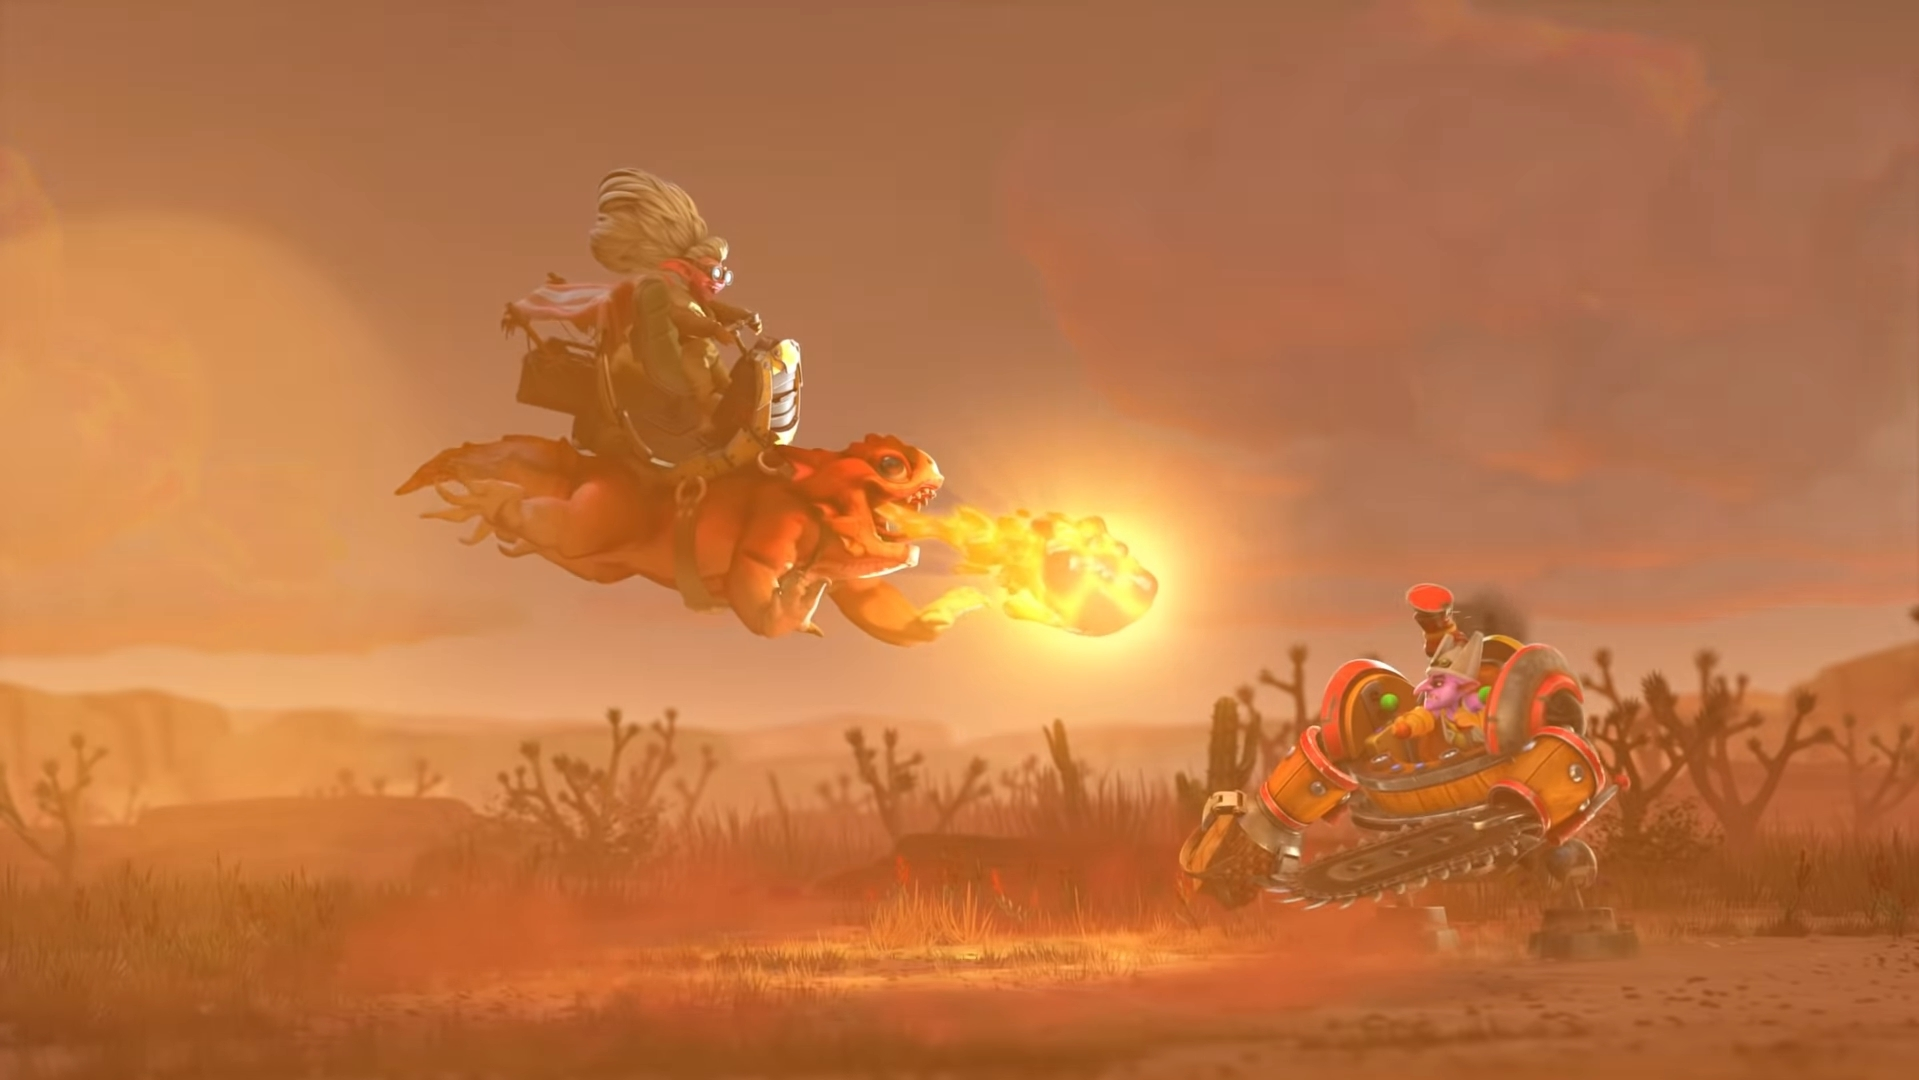 Fall In Nyc Wallpaper Dota 2 S Newest Hero Snapfire Revealed At The